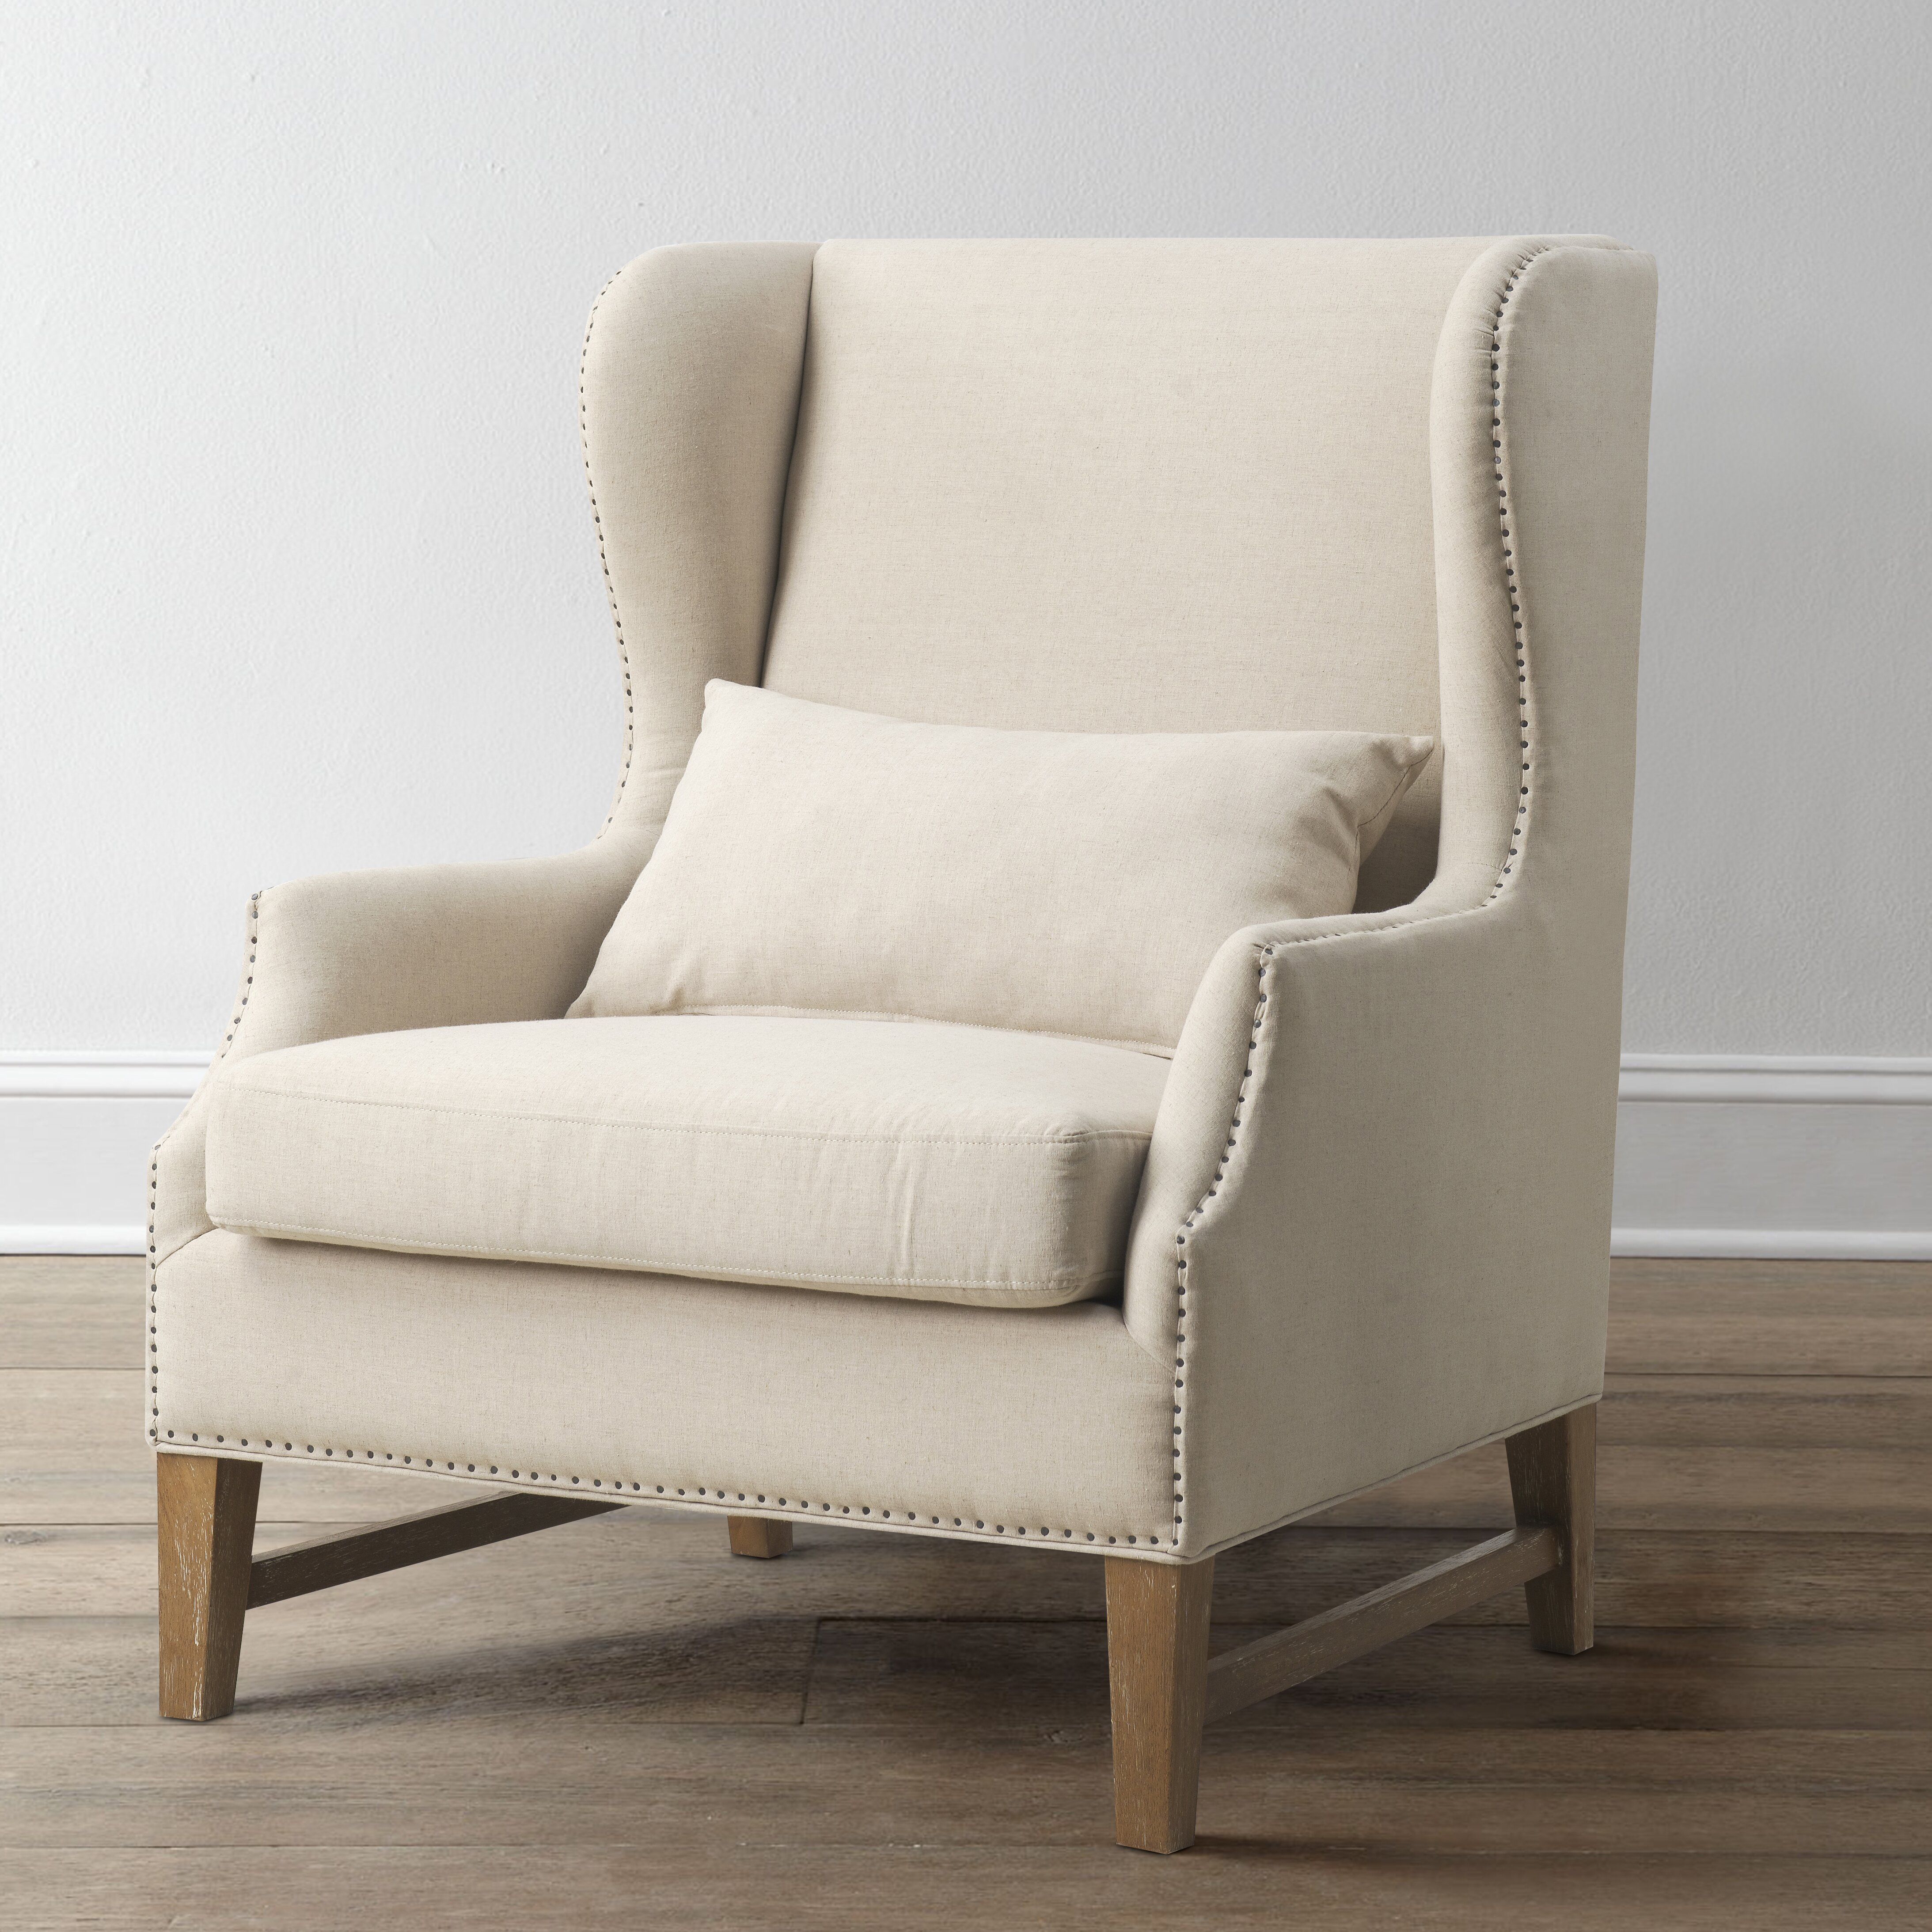 Canora grey governor wing arm chair reviews wayfair